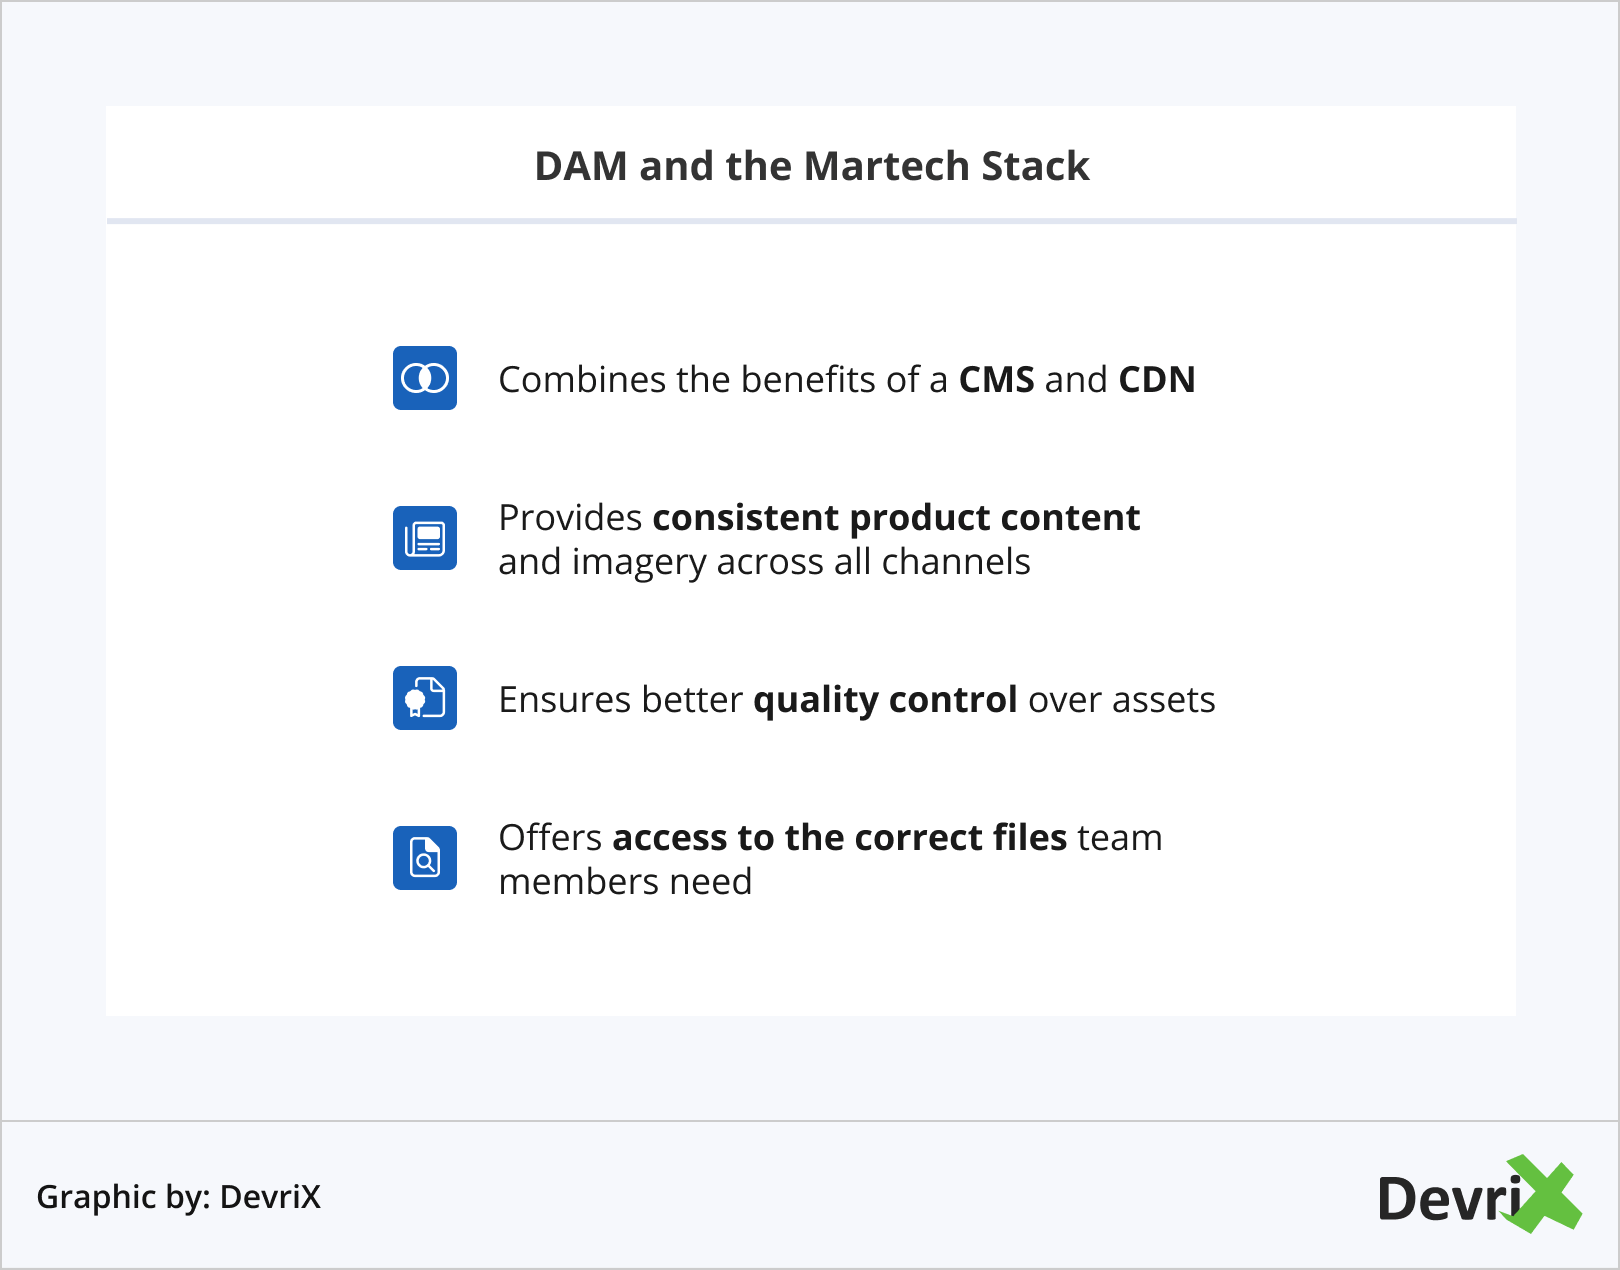 DAM and the Martech Stack